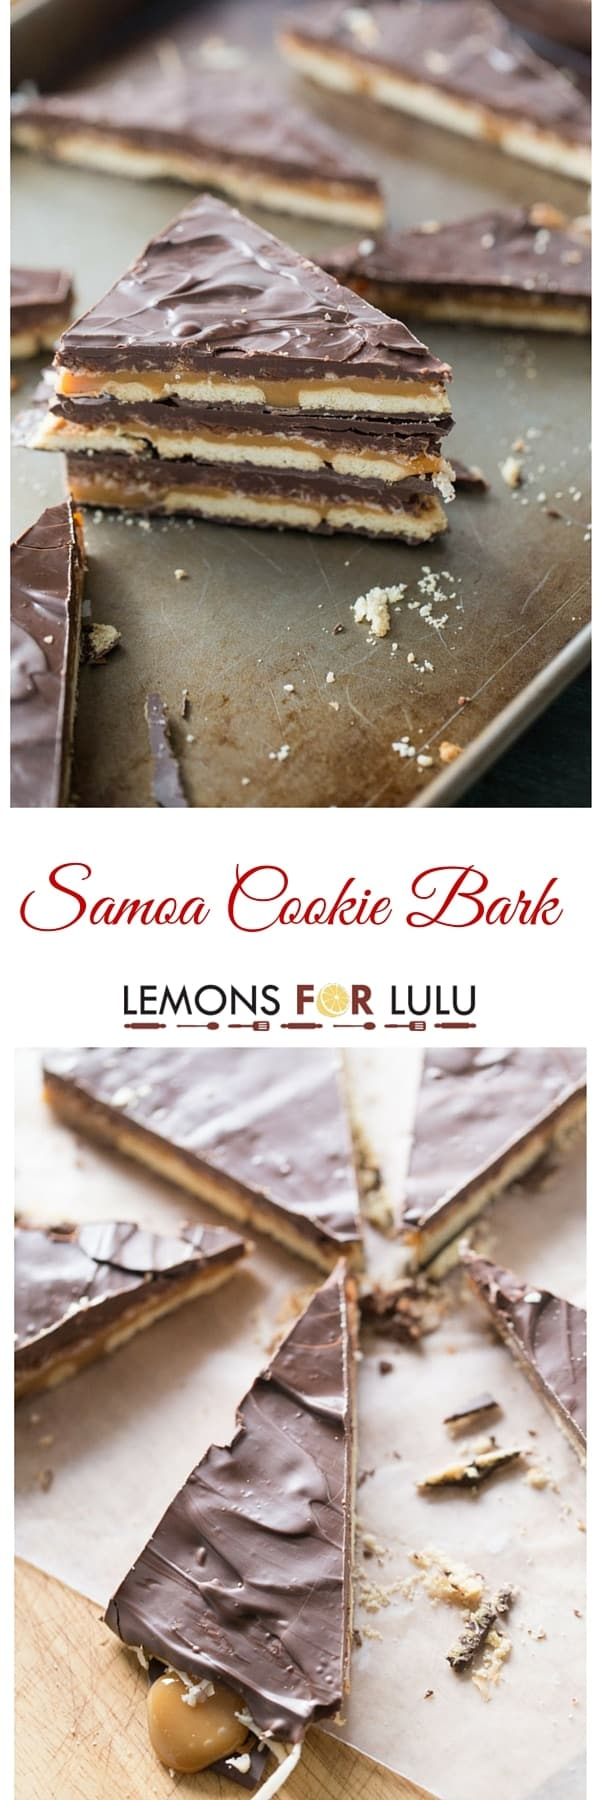 Samoa cookies are the inspiration behind this easy bark recipe! Layers of chocolate, shortbread cookies, caramel and toasted coconut come together in this simple recipe. These simple dessert makes an excellent gift from the kitchen! lemonsforlulu.com